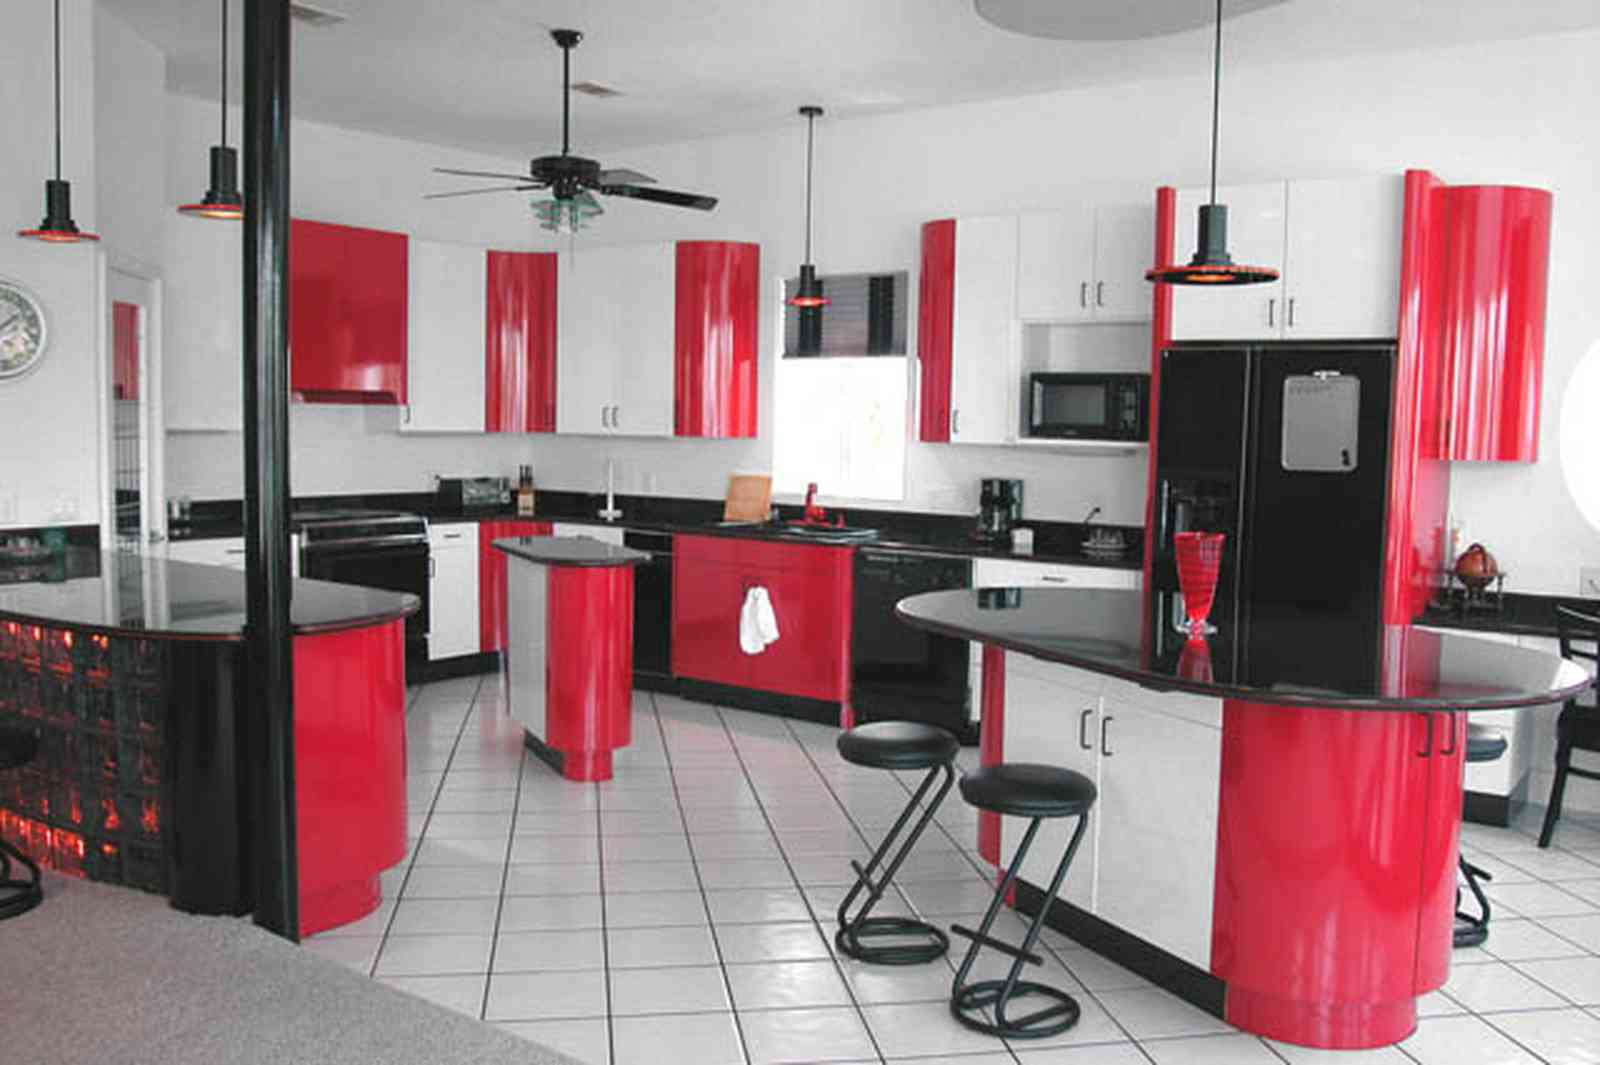 Navarre:-7332-Grand-Navarre-Blvd_21.jpg:  red lacquer cabinets, red and black, art deco decor, art deco house, kitchen, red kitchen cabinets, glass brick bar, ceiling fan, black laquer cabinets